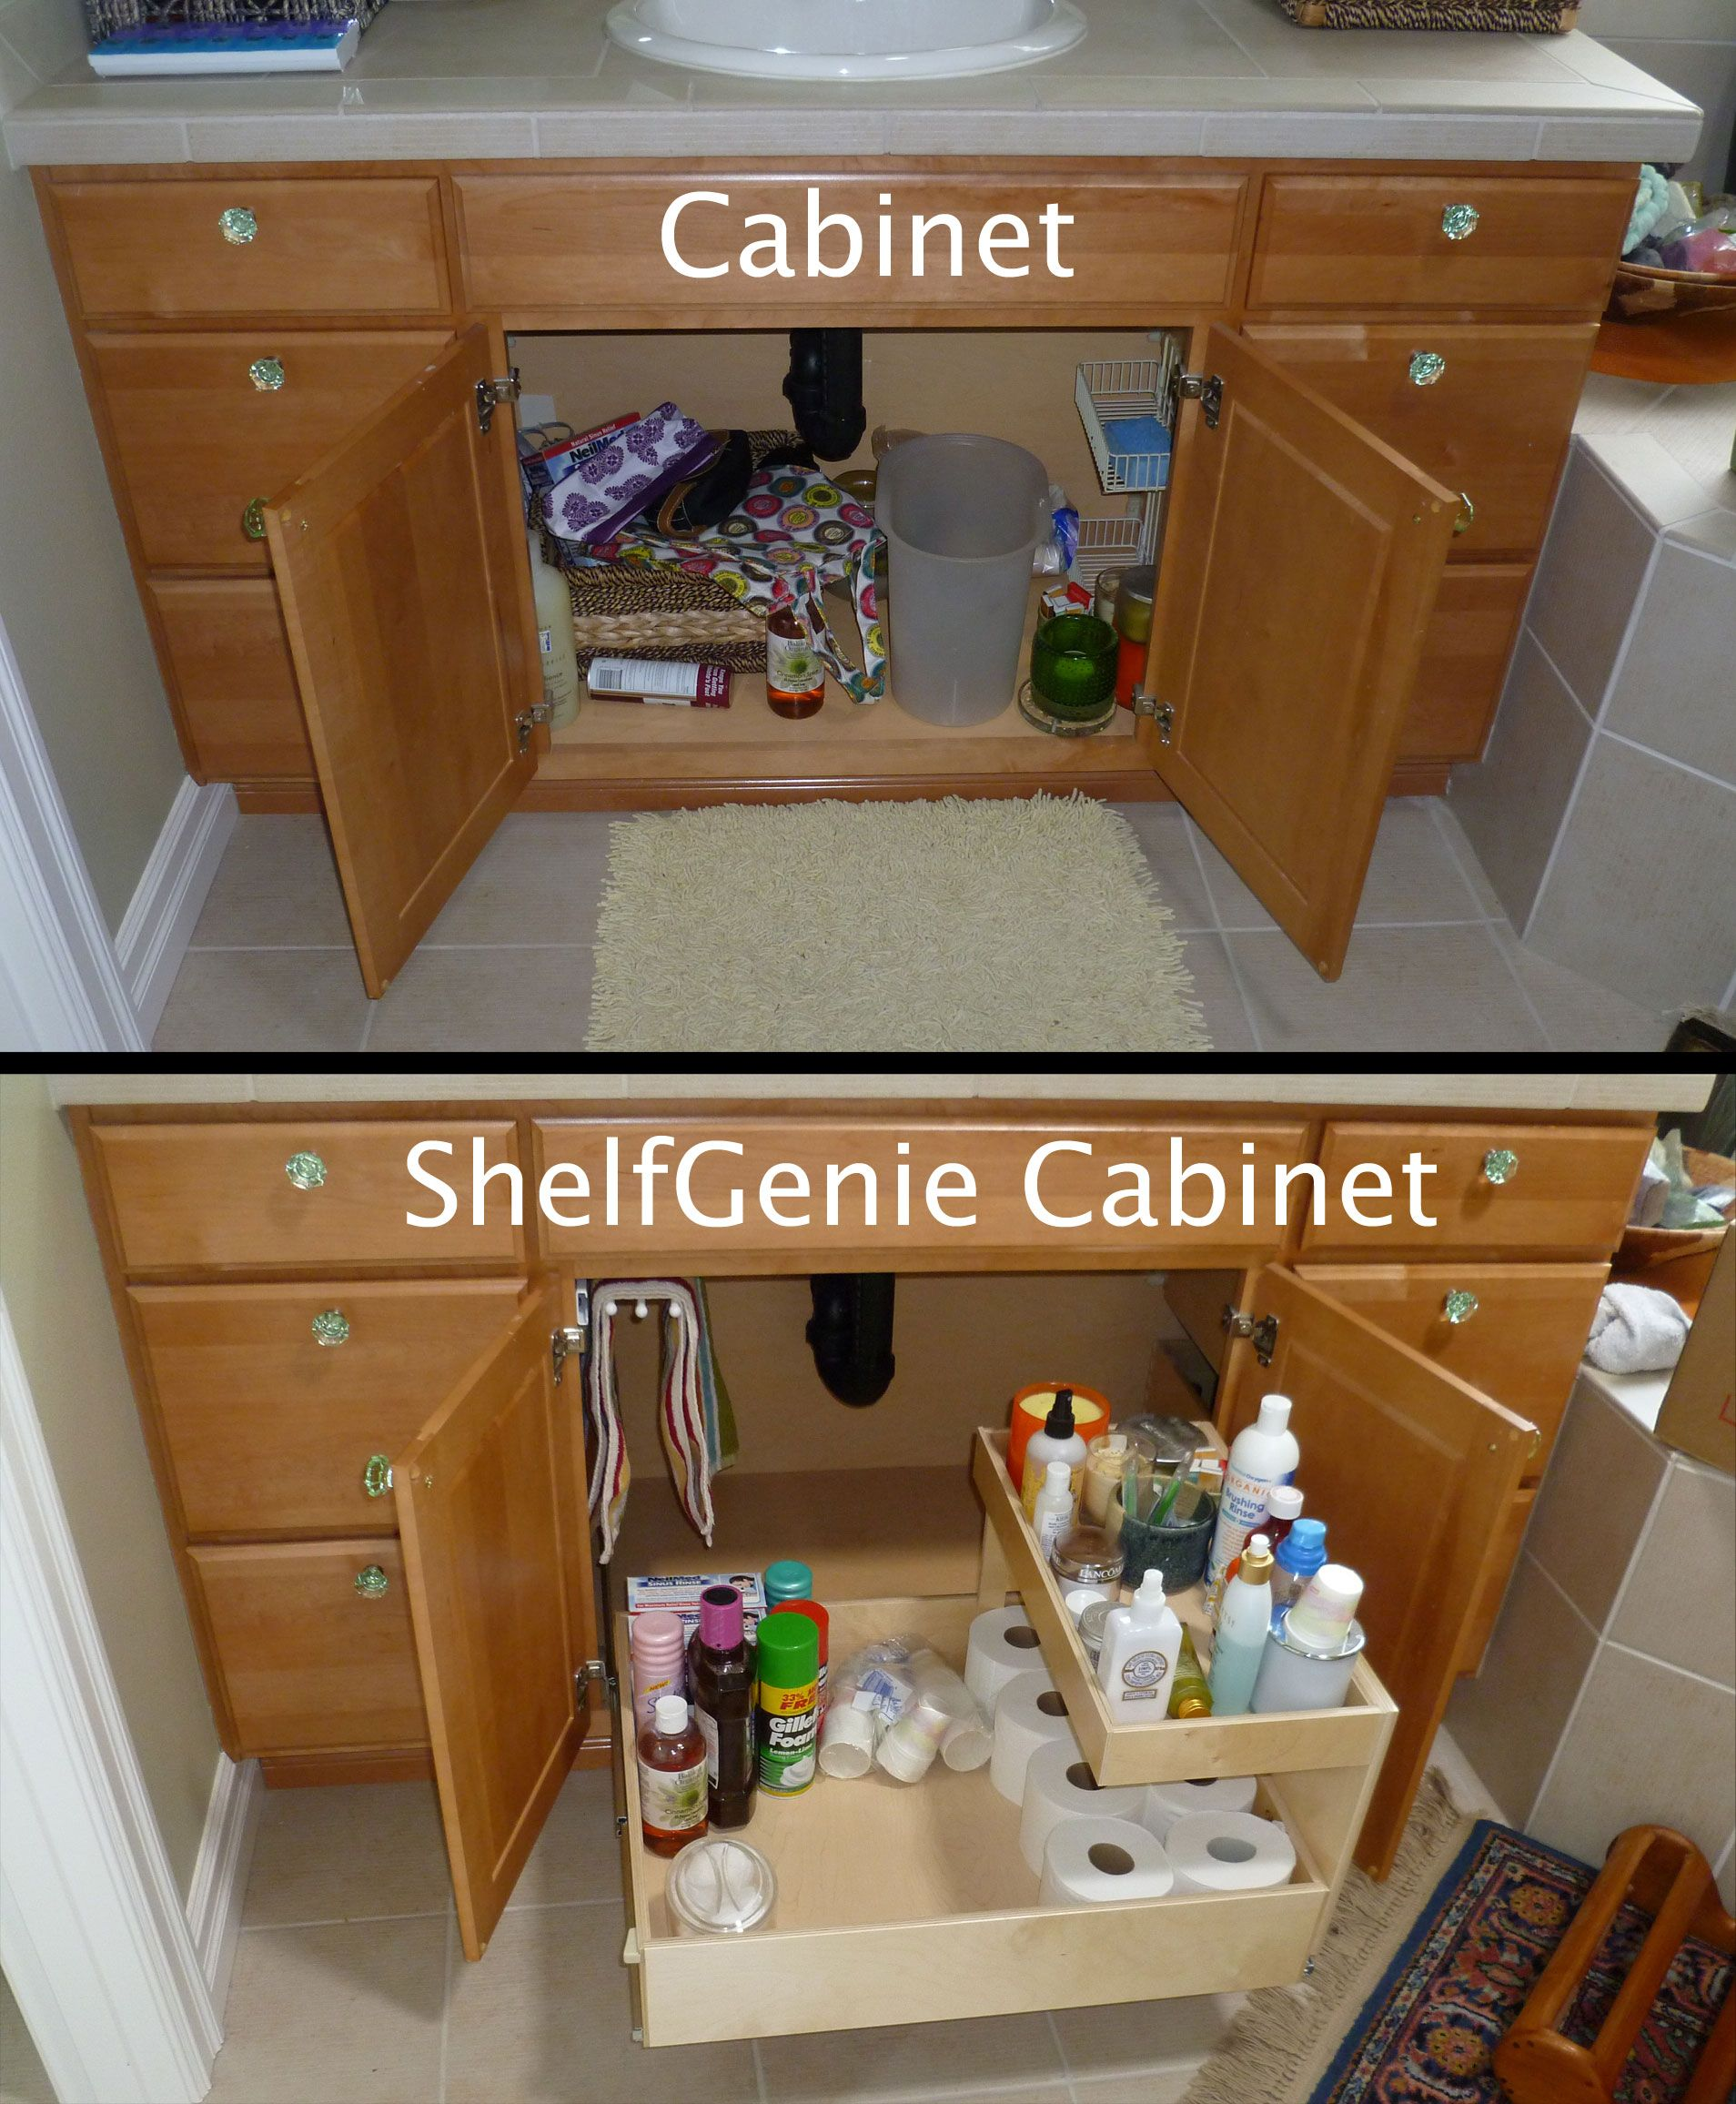 The Recipe For Turning This Cabinet Into A ShelfGenie